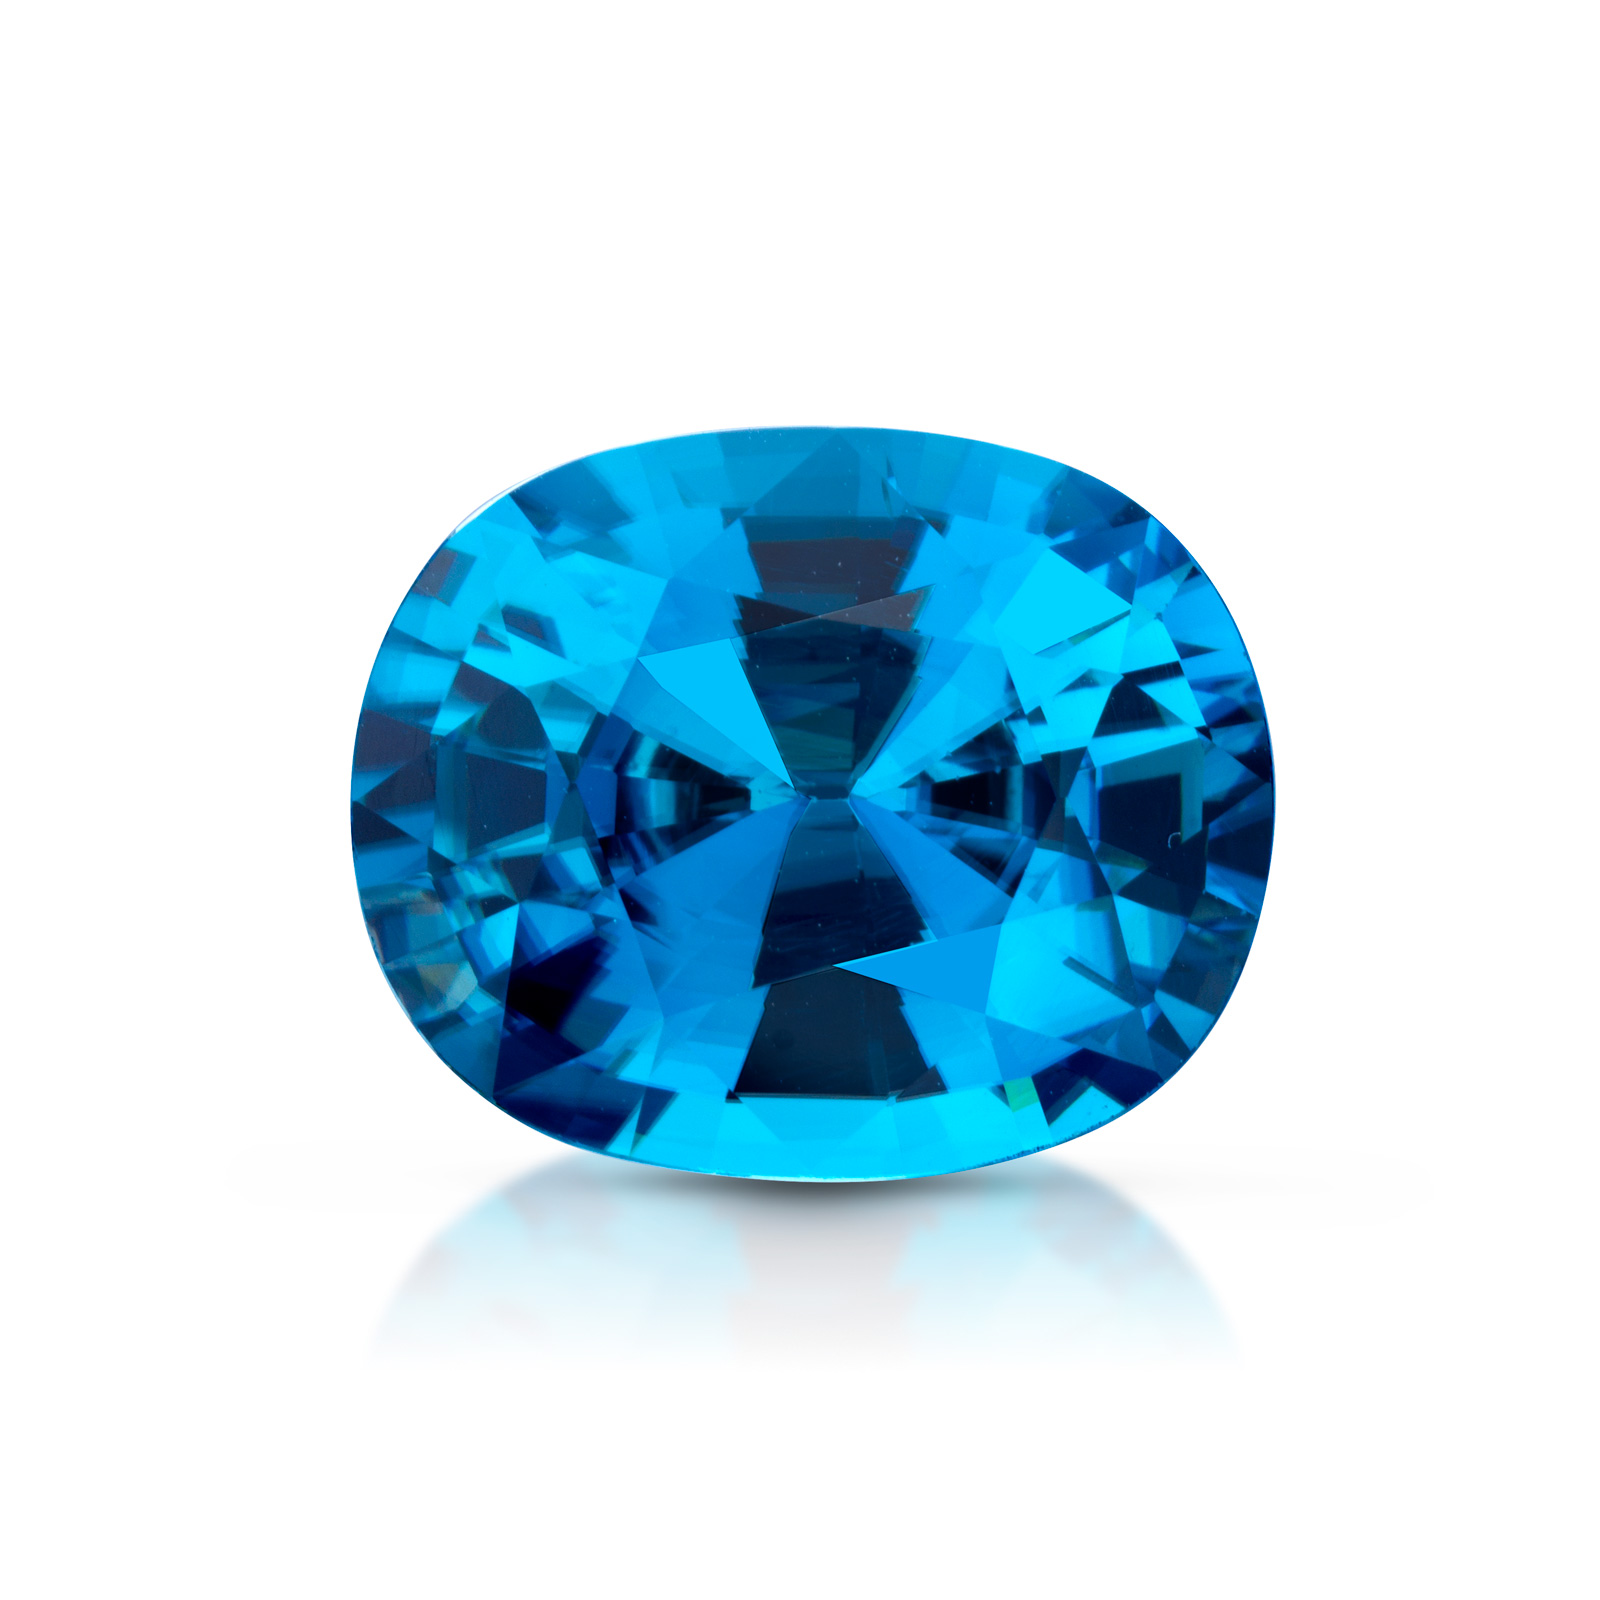 ClaudiaHamann_Zircon_Cambodia_Oval_12,49cts_ZCK16D7